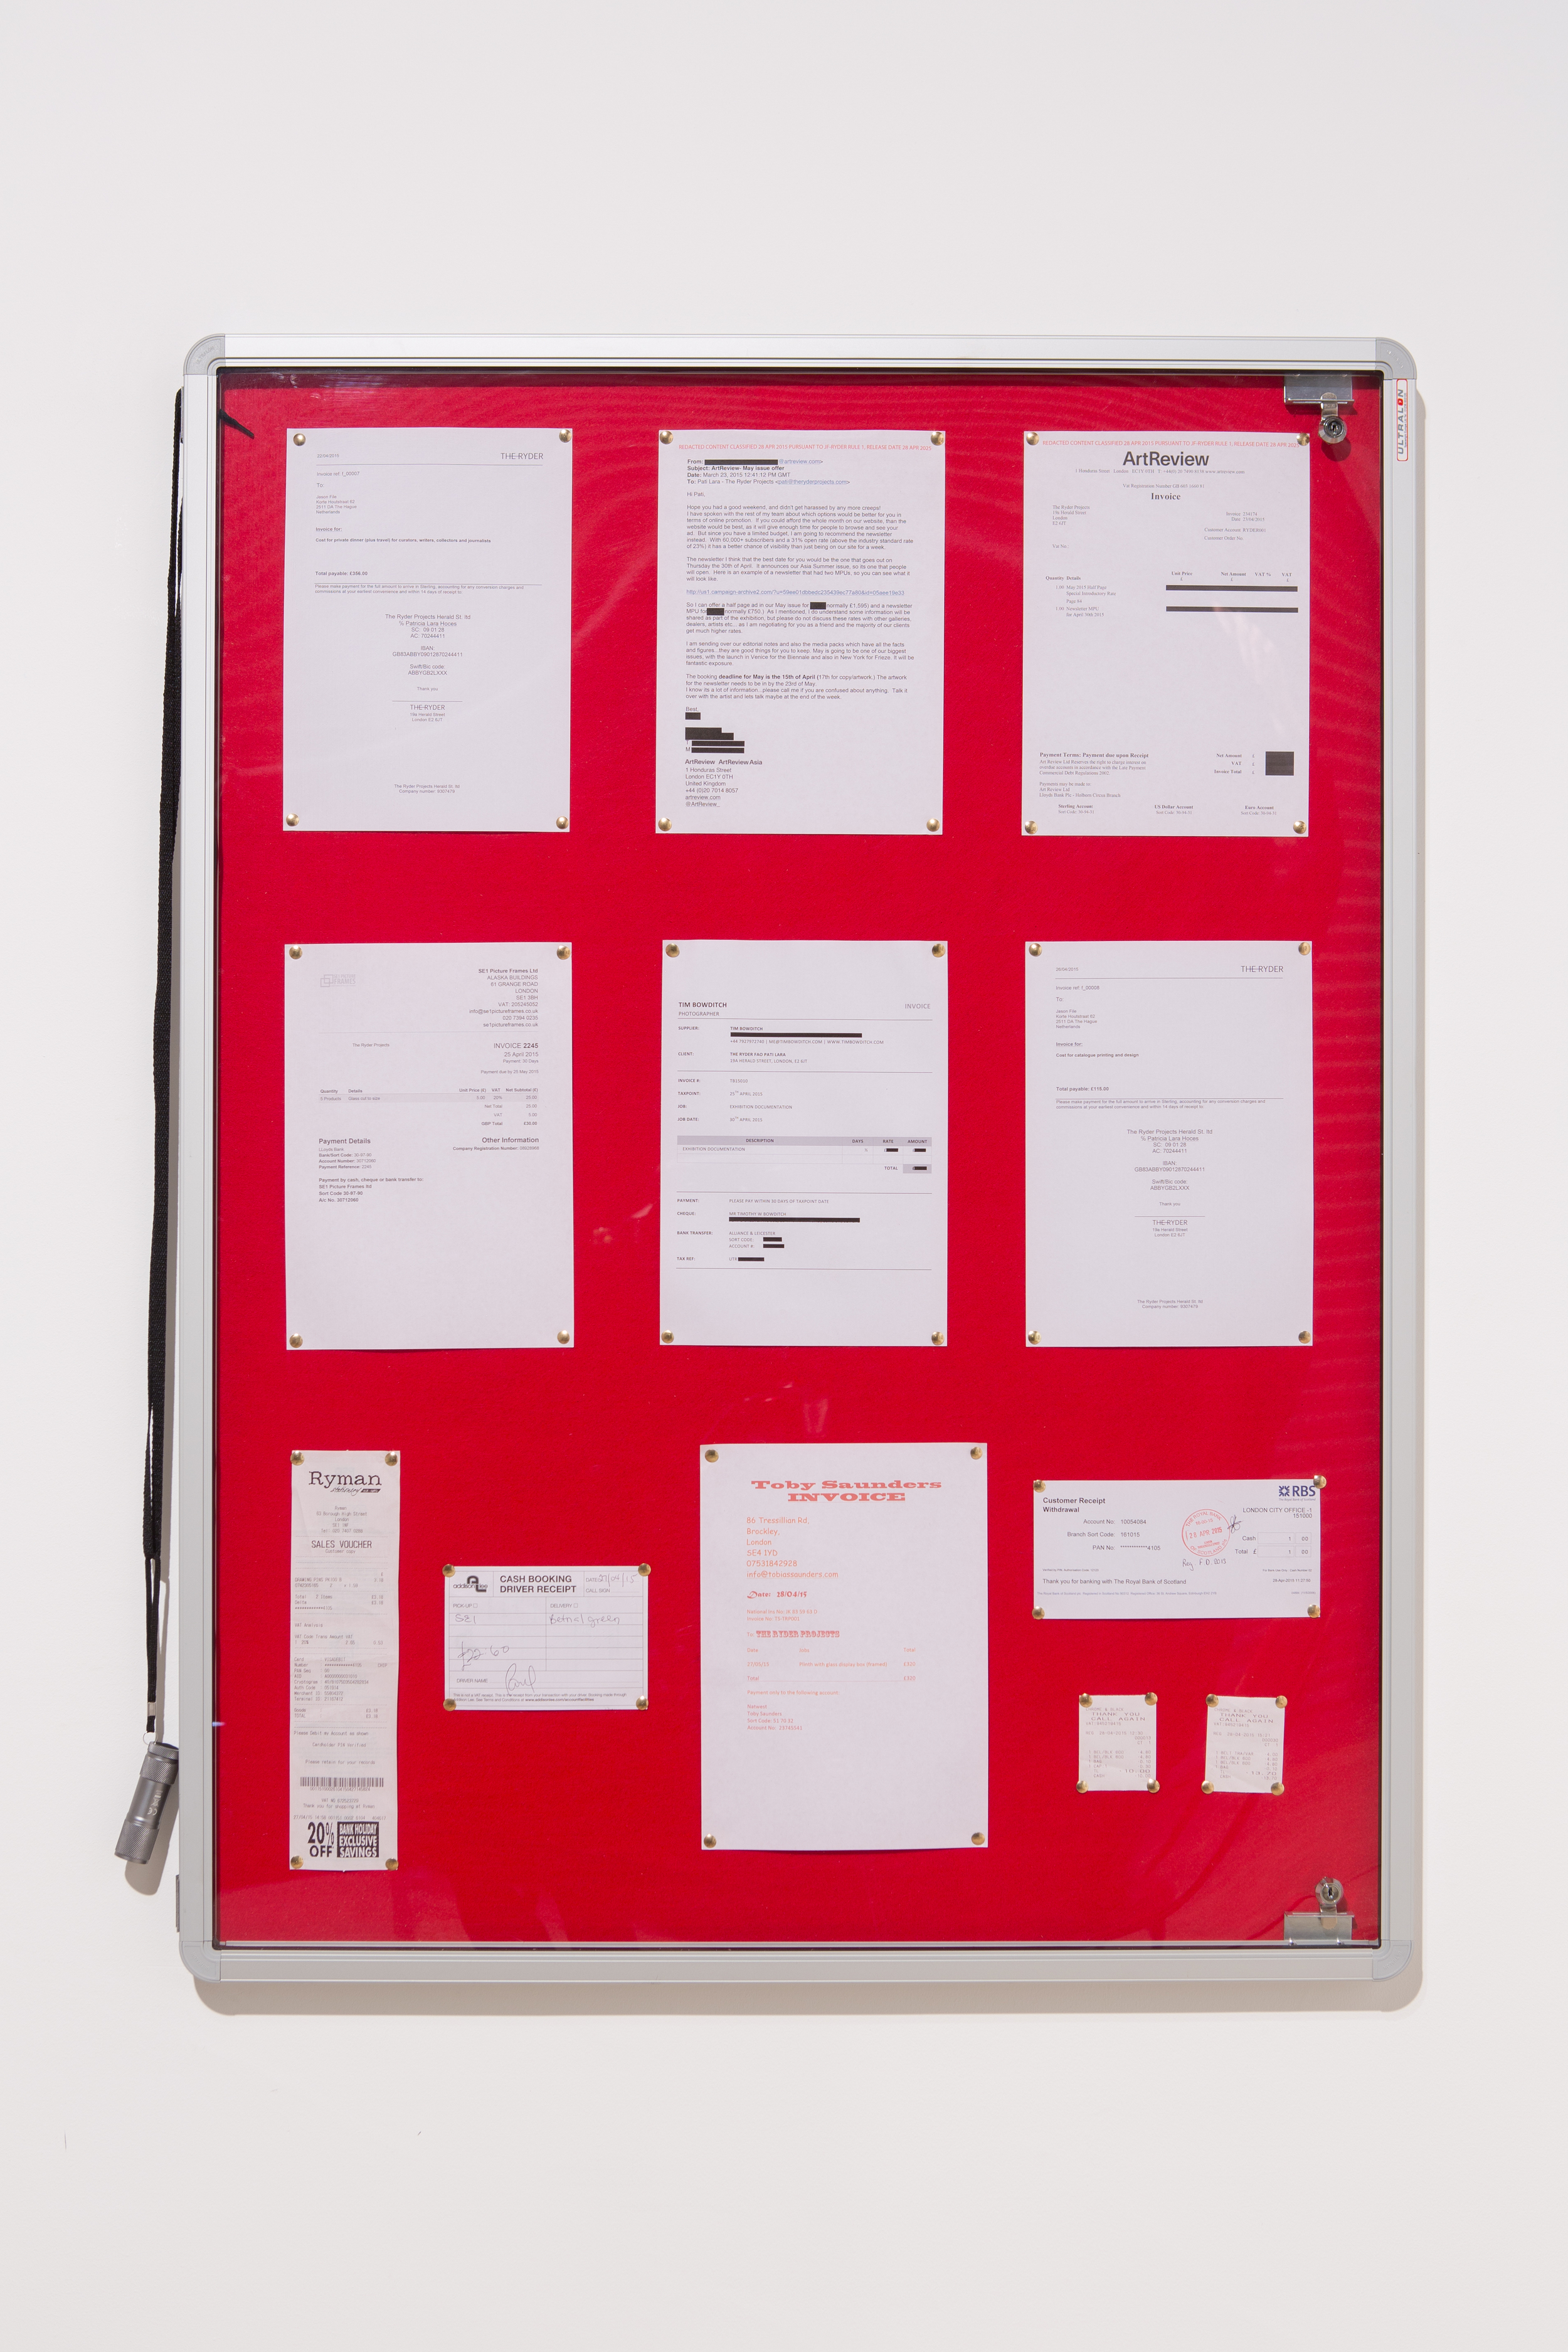 Jason File,   An  Ornament  and a Safeguard  , 2015 (Panel 1 of 4): Documents, display case, torch on thread